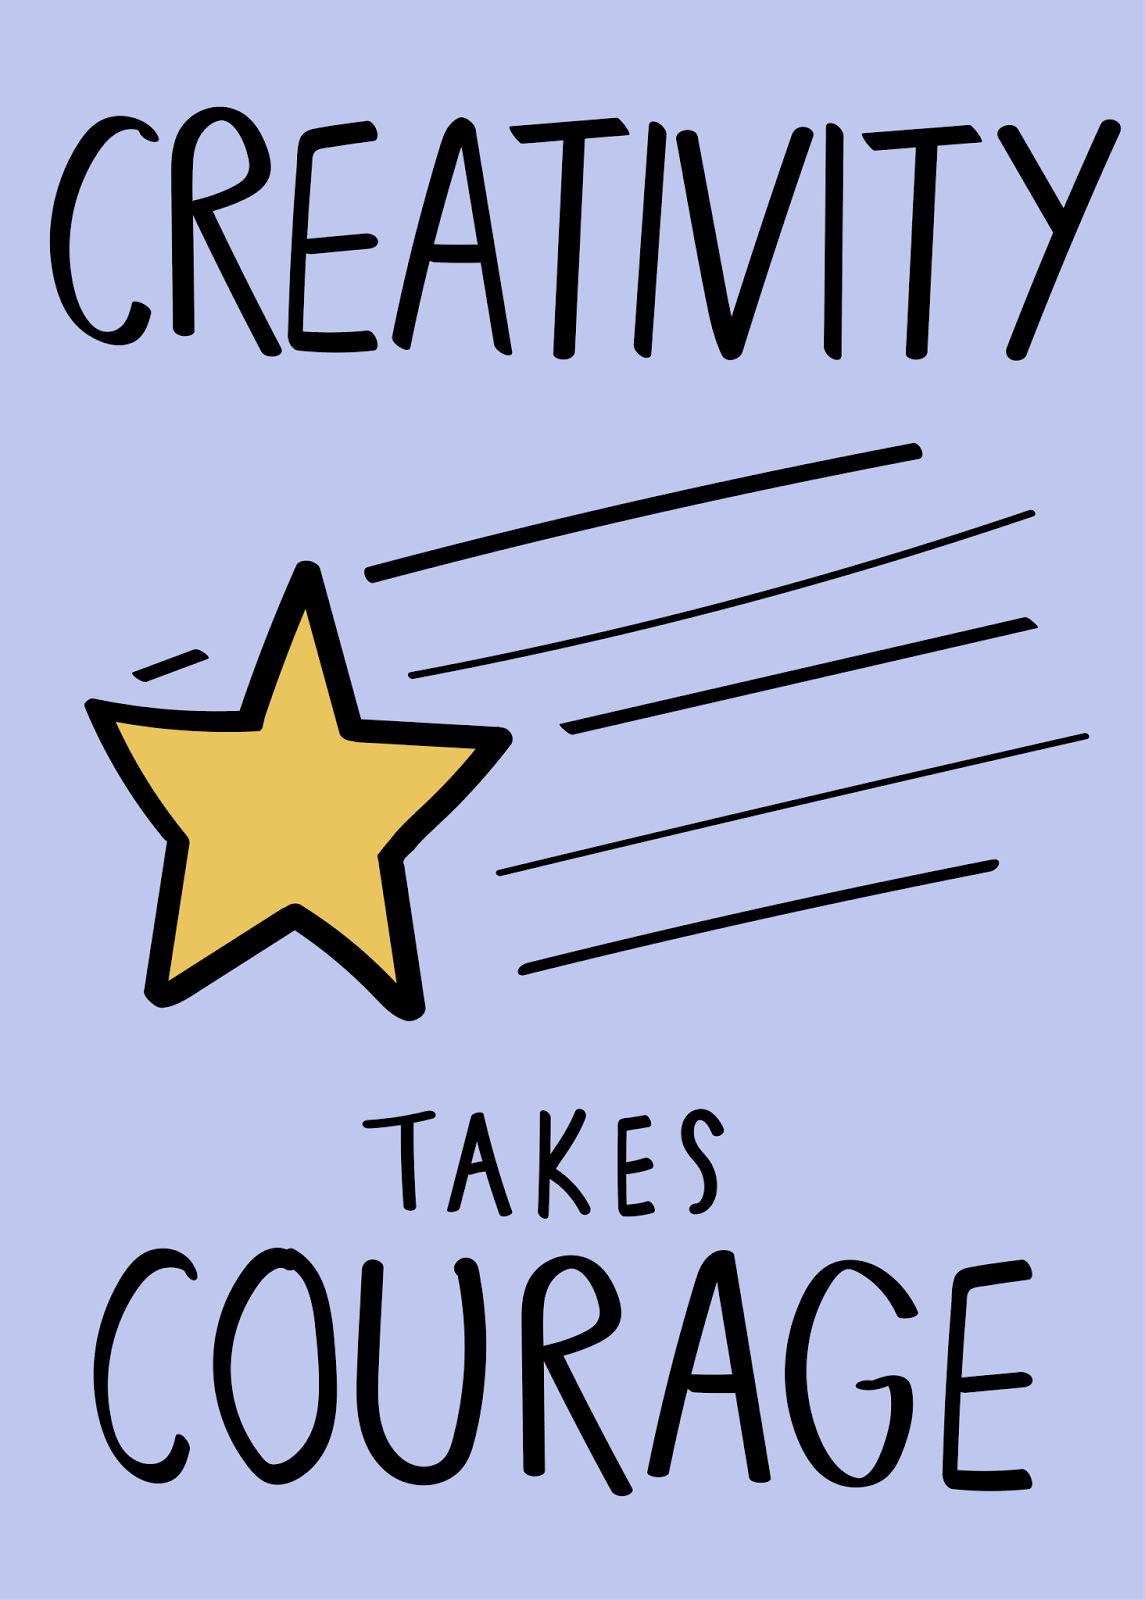 creativity takes courage illustration